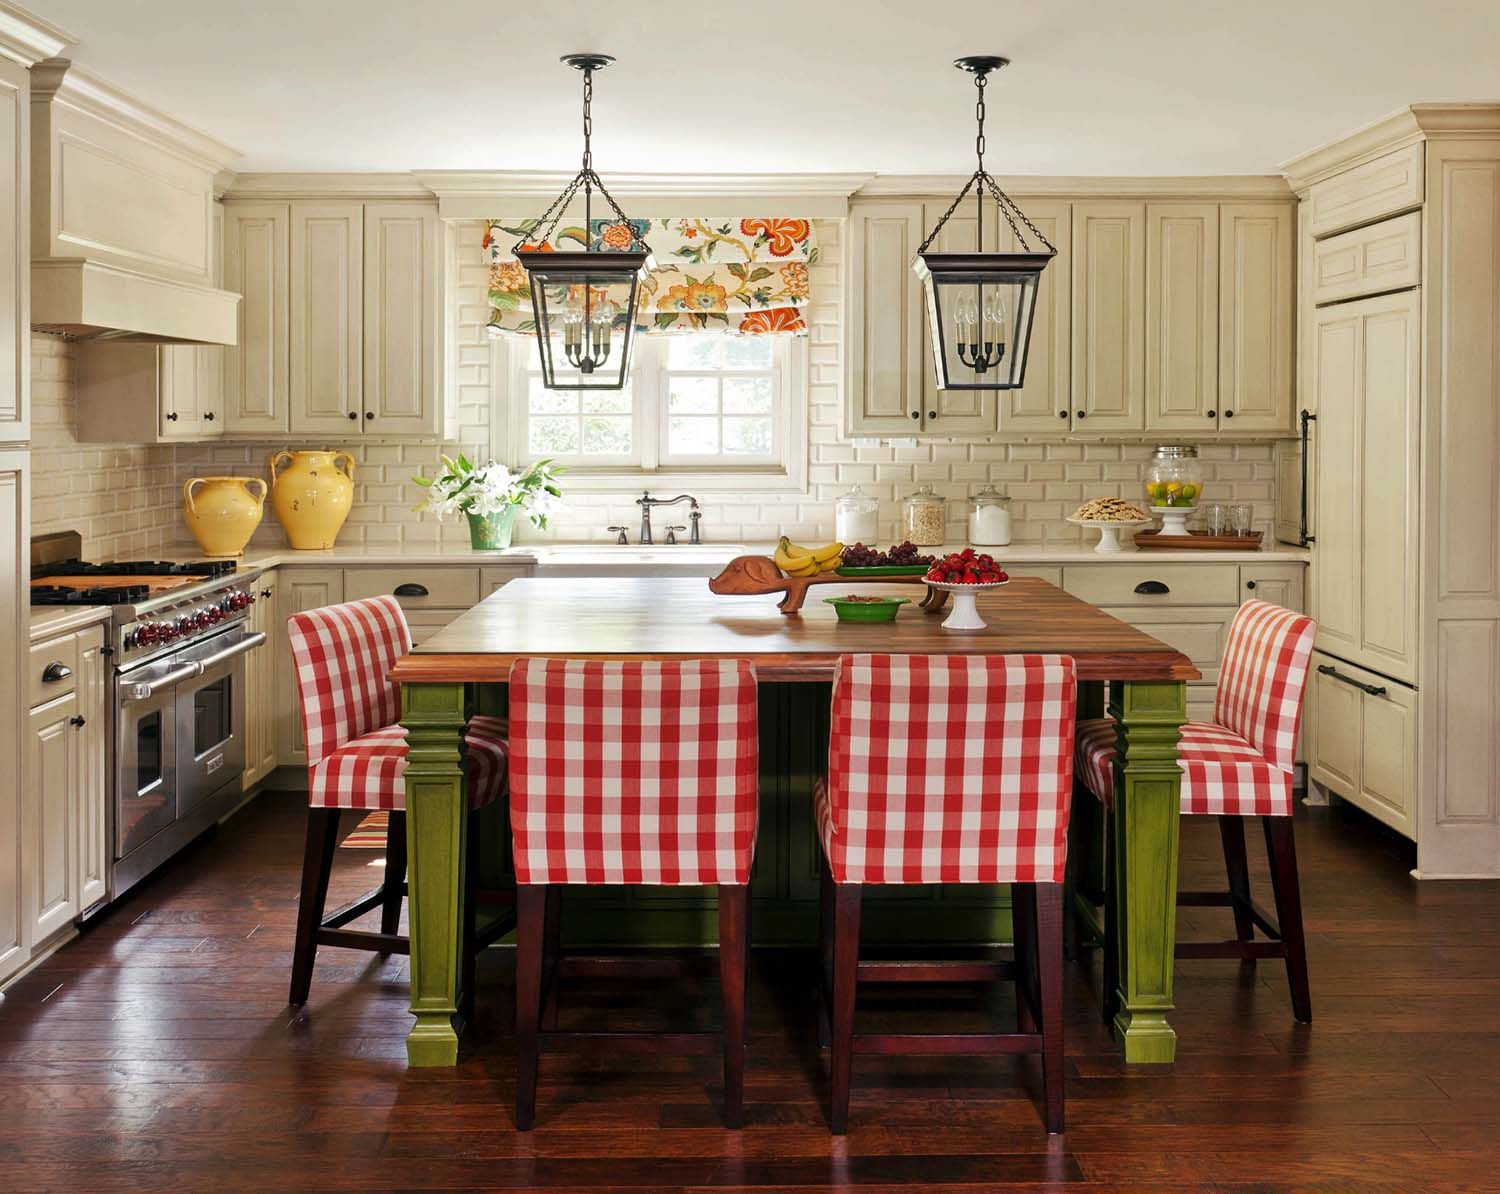 33 amazing country chic kitchens brimming with character kitchen remodel layout cheap kitchen on kitchen remodel must haves id=46458